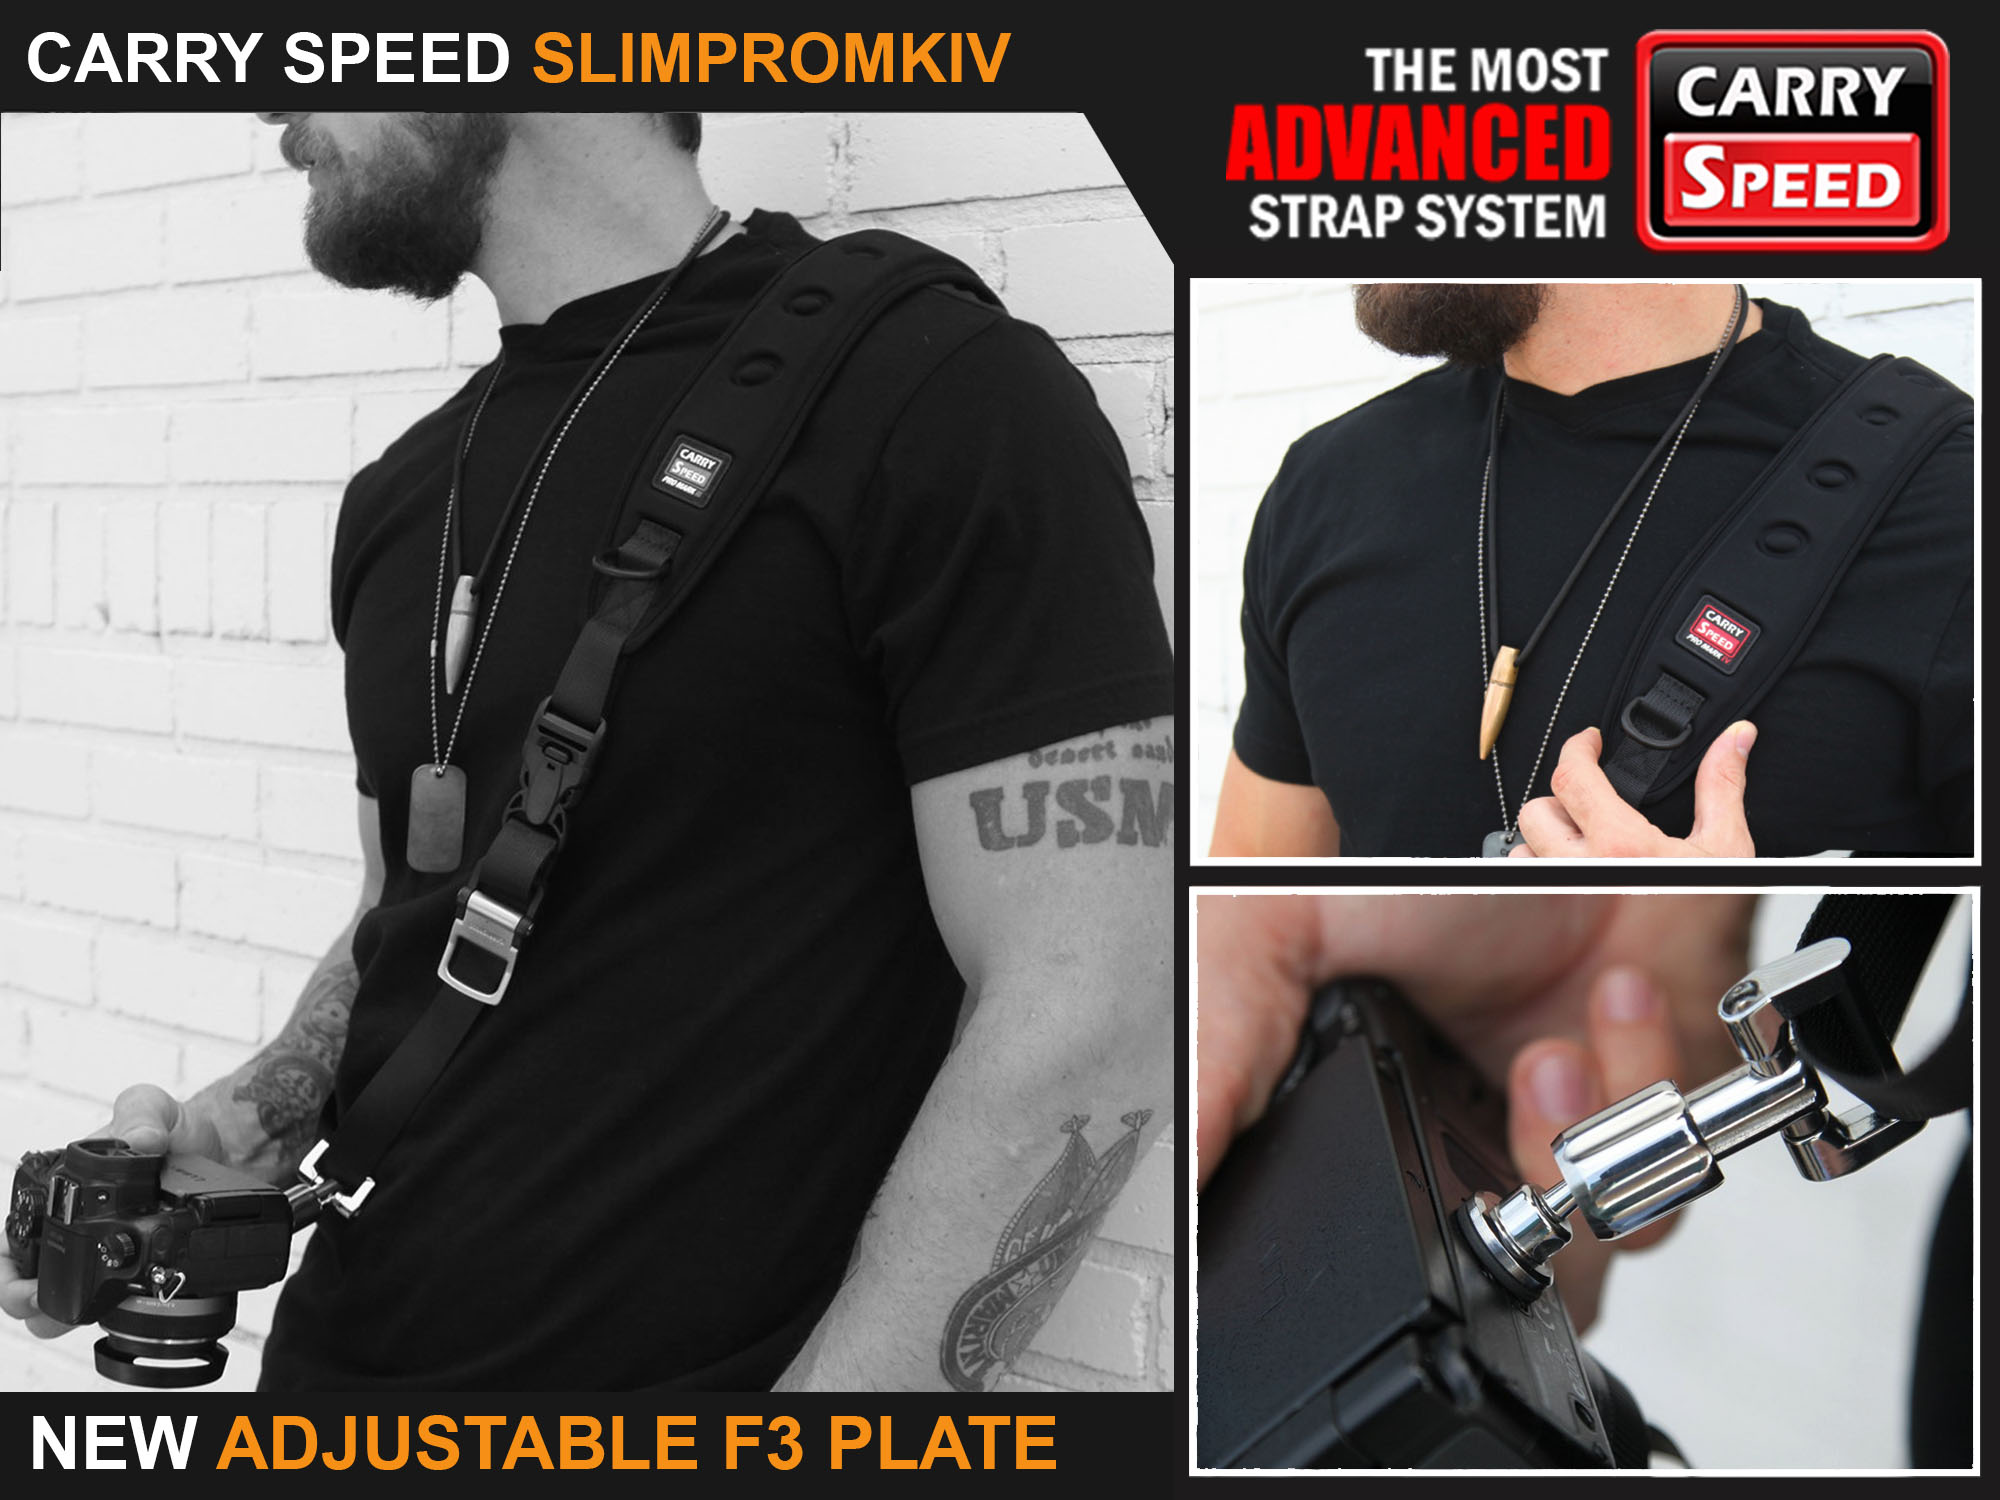 Carry Speed Slim Pro MKIV Strap